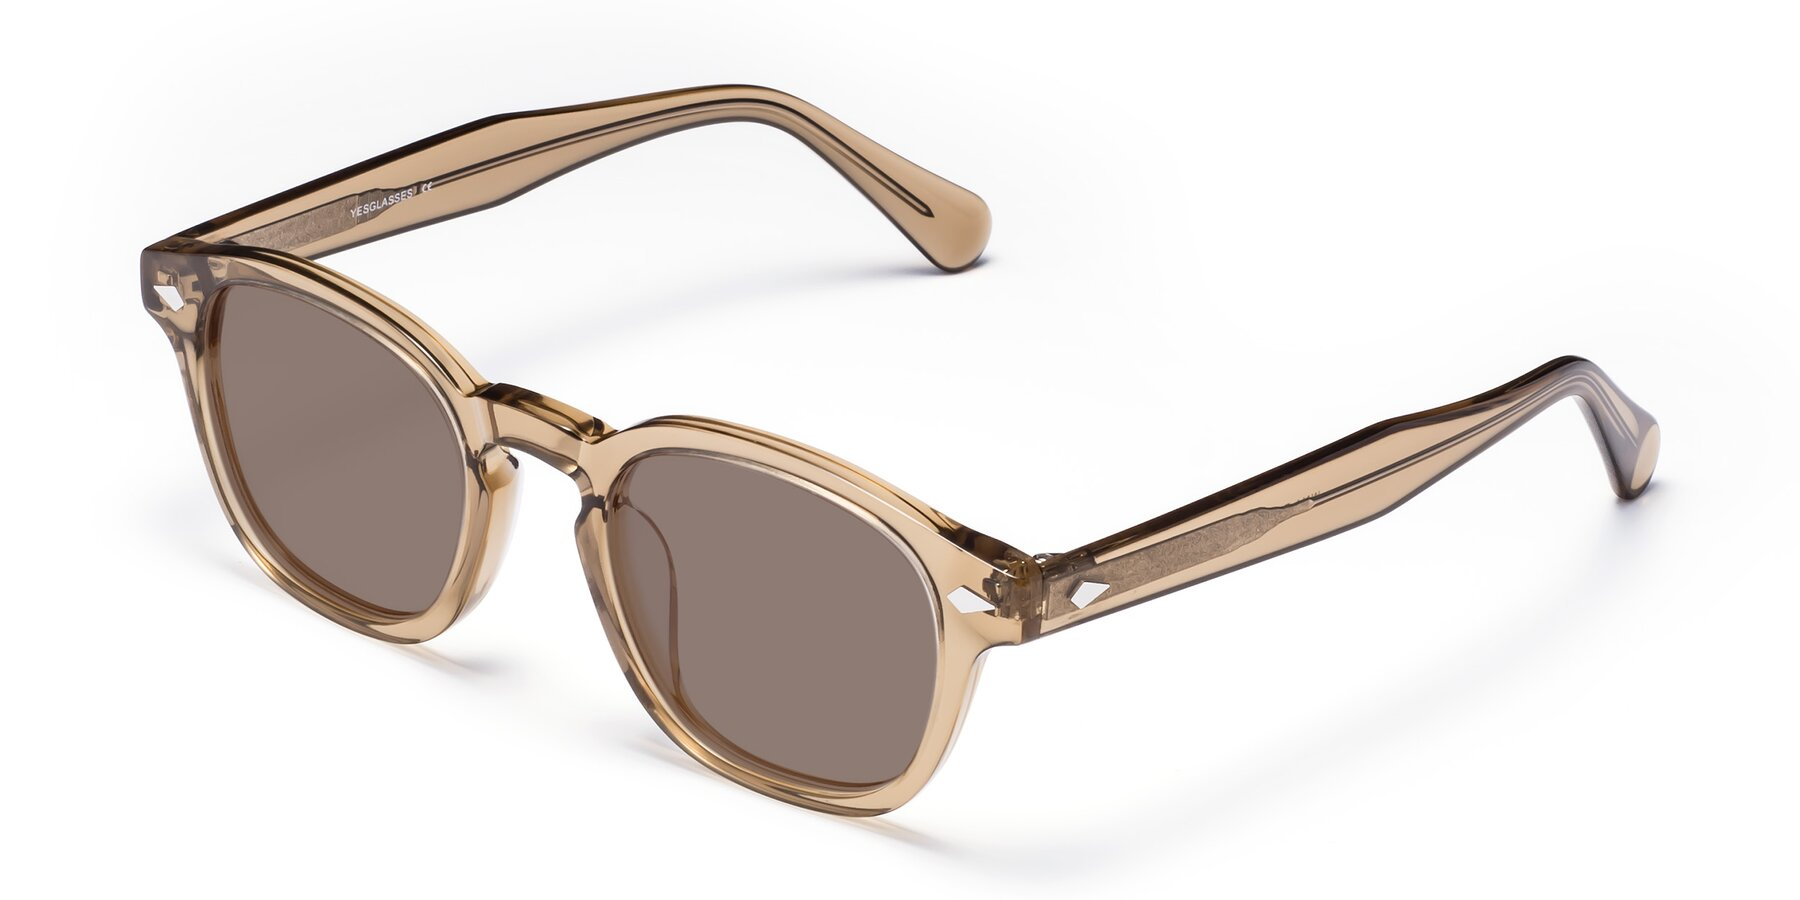 Angle of WALL-E in Champagne with Medium Brown Tinted Lenses